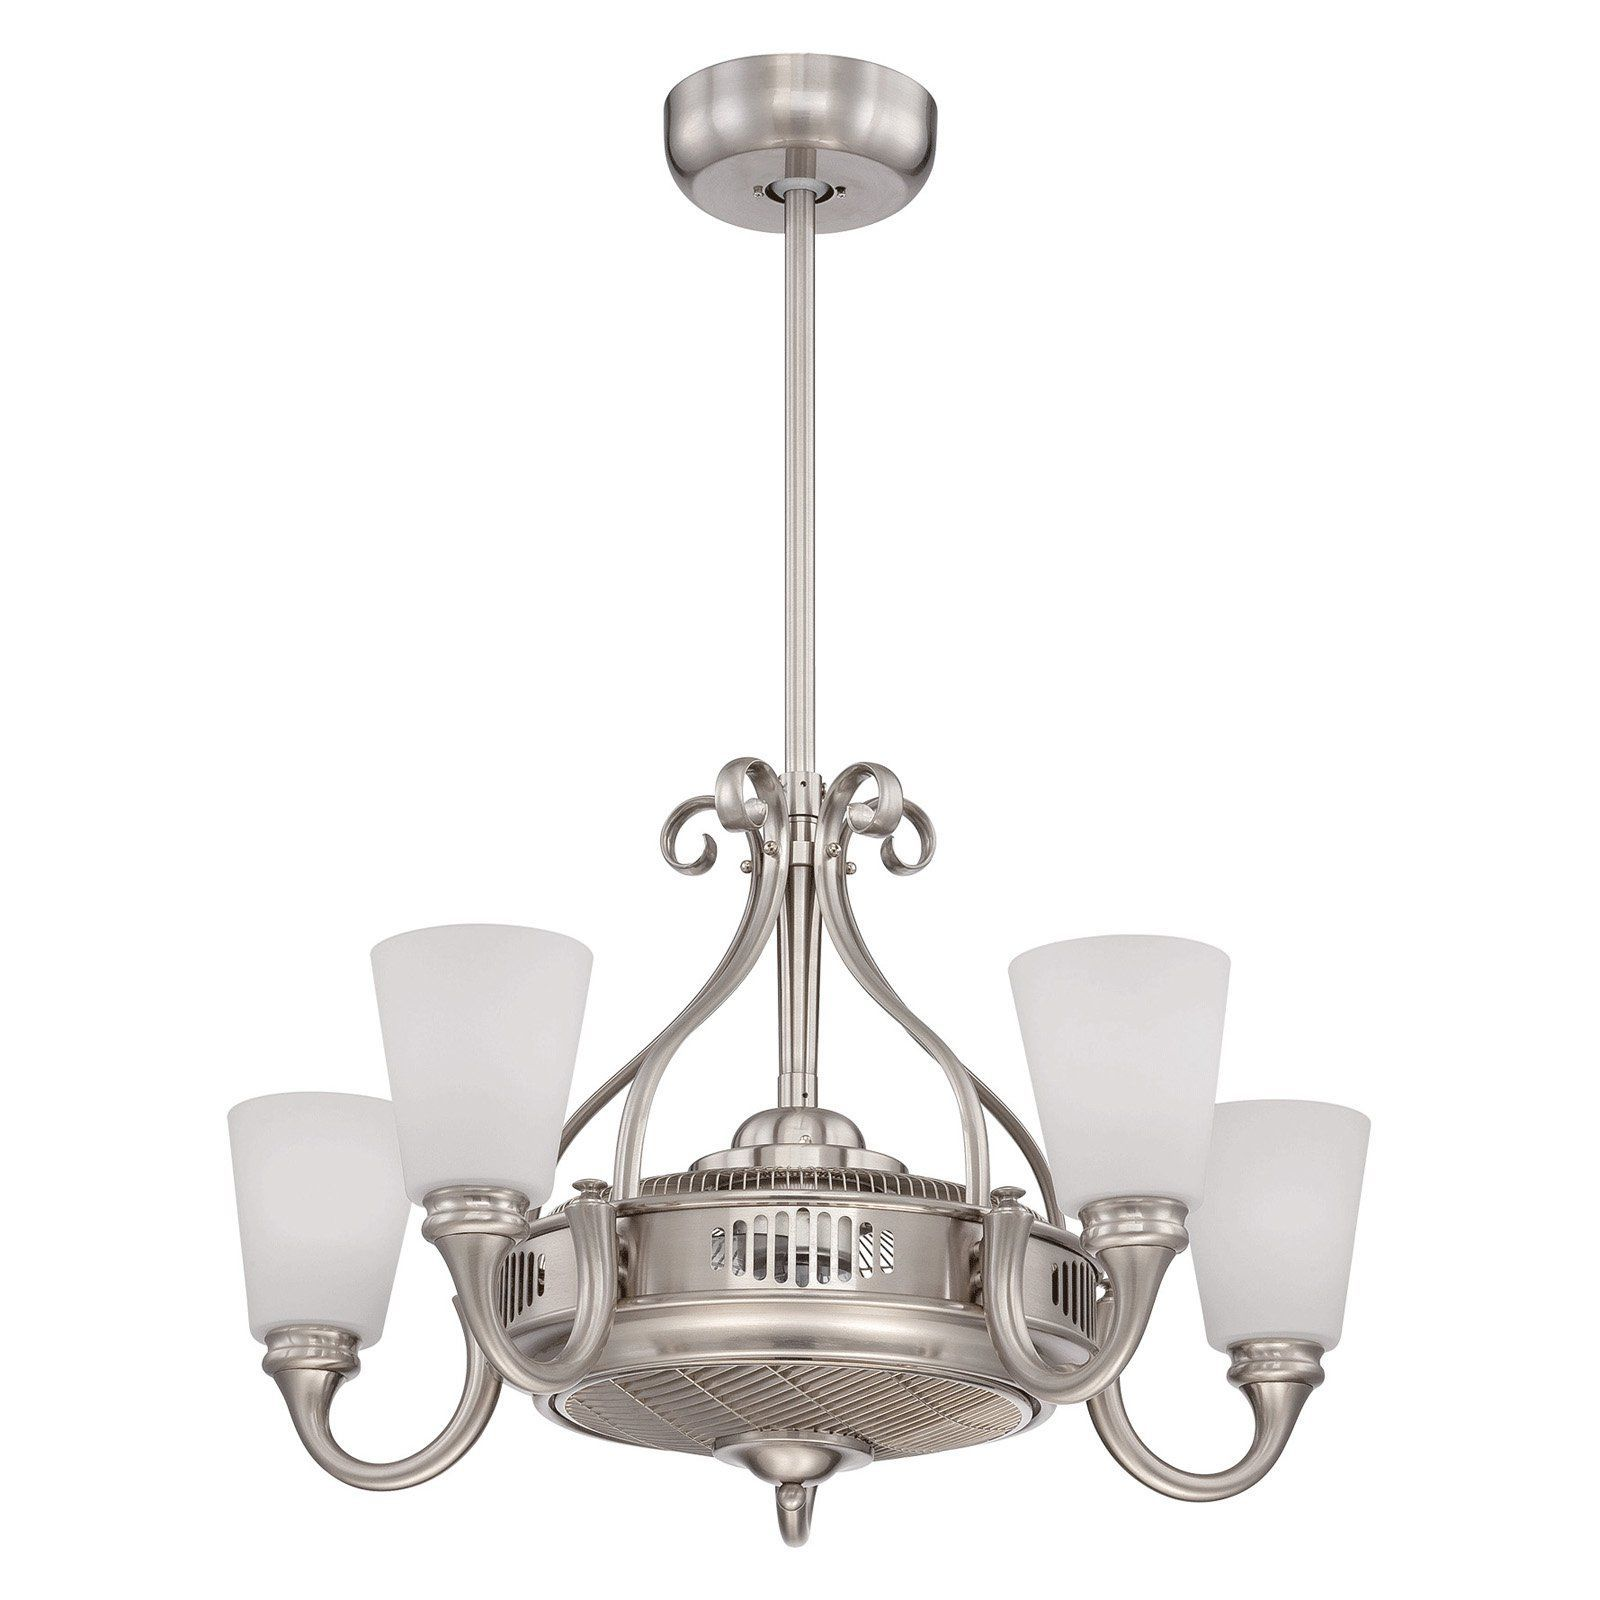 A ceiling pendant lamp turned upside down! This retro